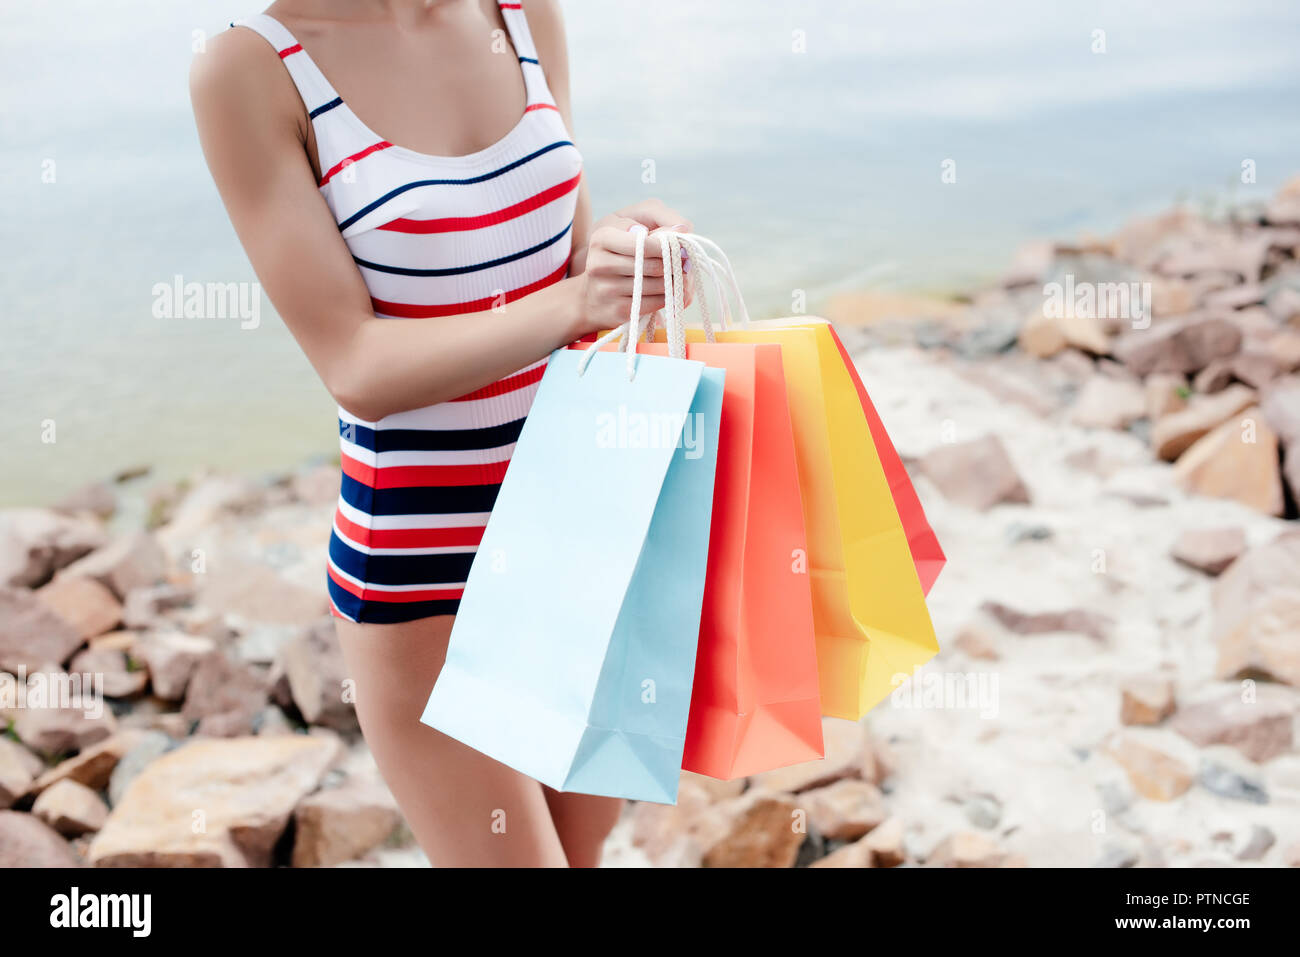 8bf56fac88 partial view of girl in retro striped swimwear holding colorful shopping  bags on shore - Stock